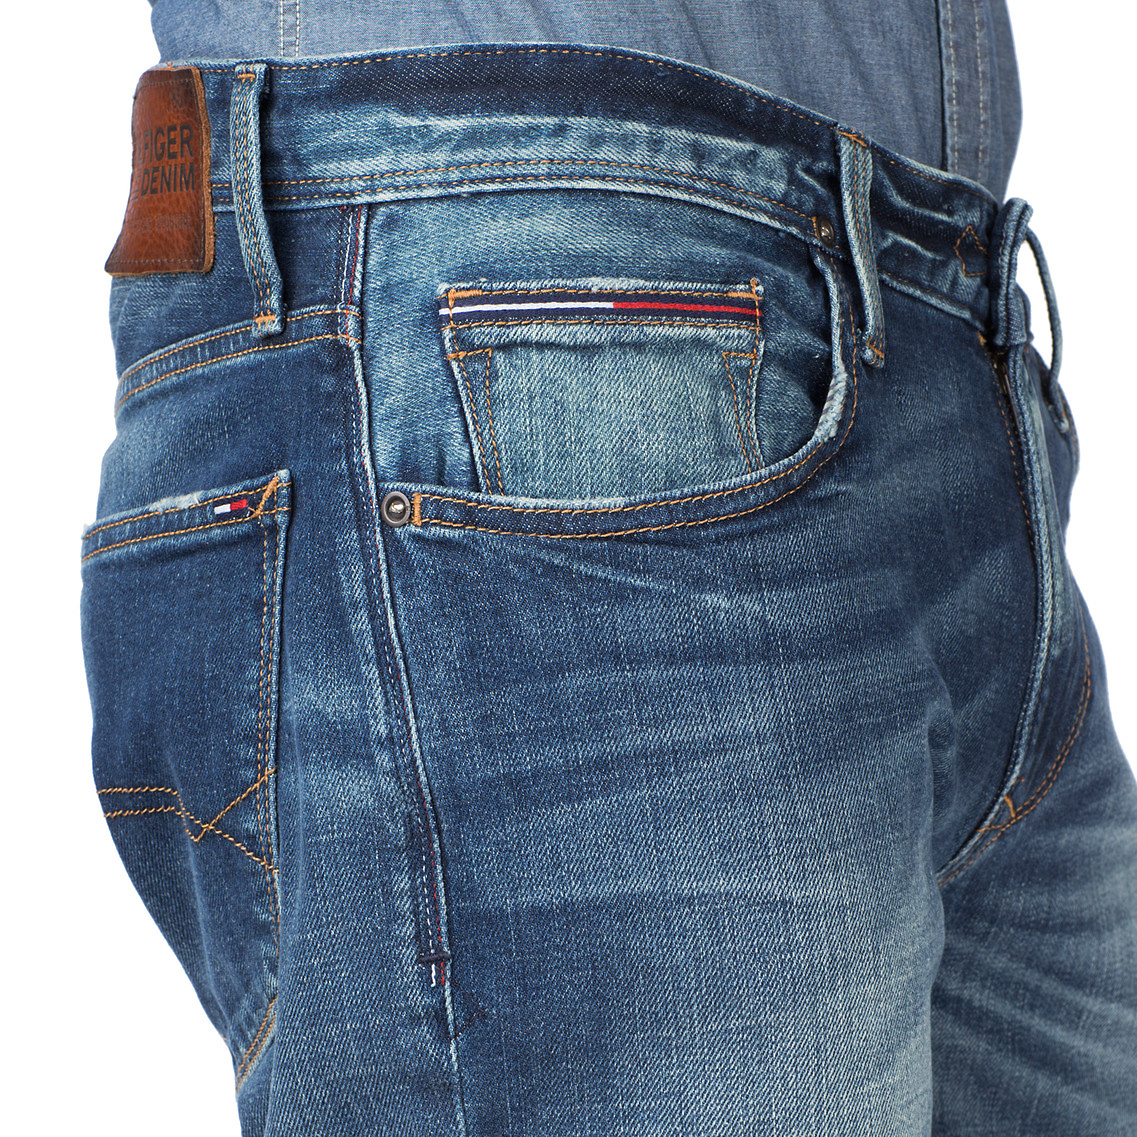 aeed1104c0d5 Tommy Hilfiger Ryan Straight Leg Jeans in Blue for Men - Lyst